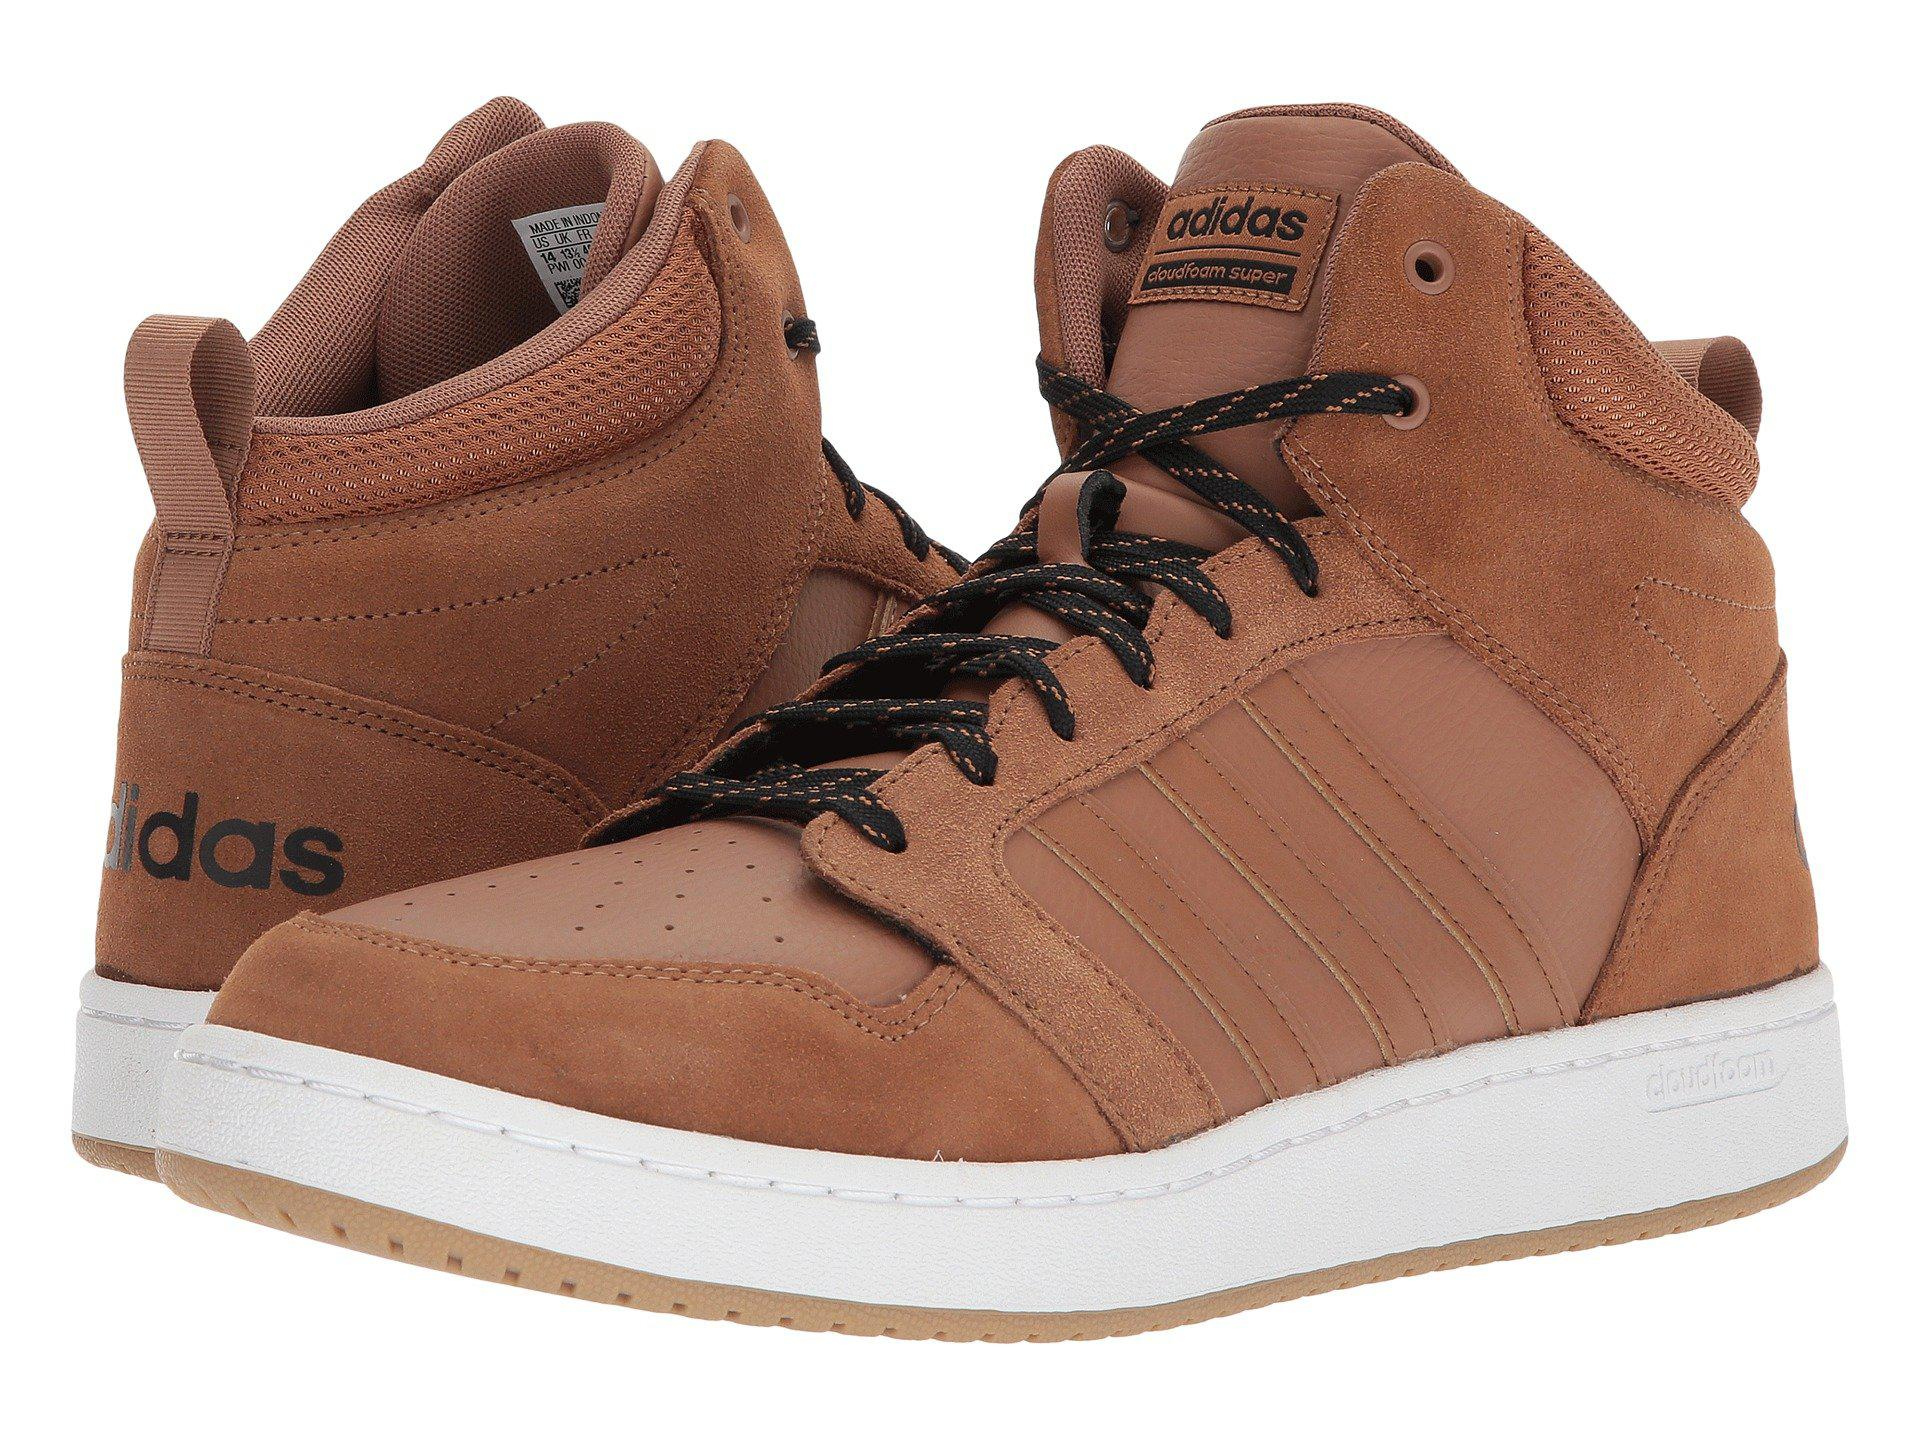 Lyst - adidas Cloudfoam Super Hoops Mid Basketball Shoe in Brown for Men c7e25a286